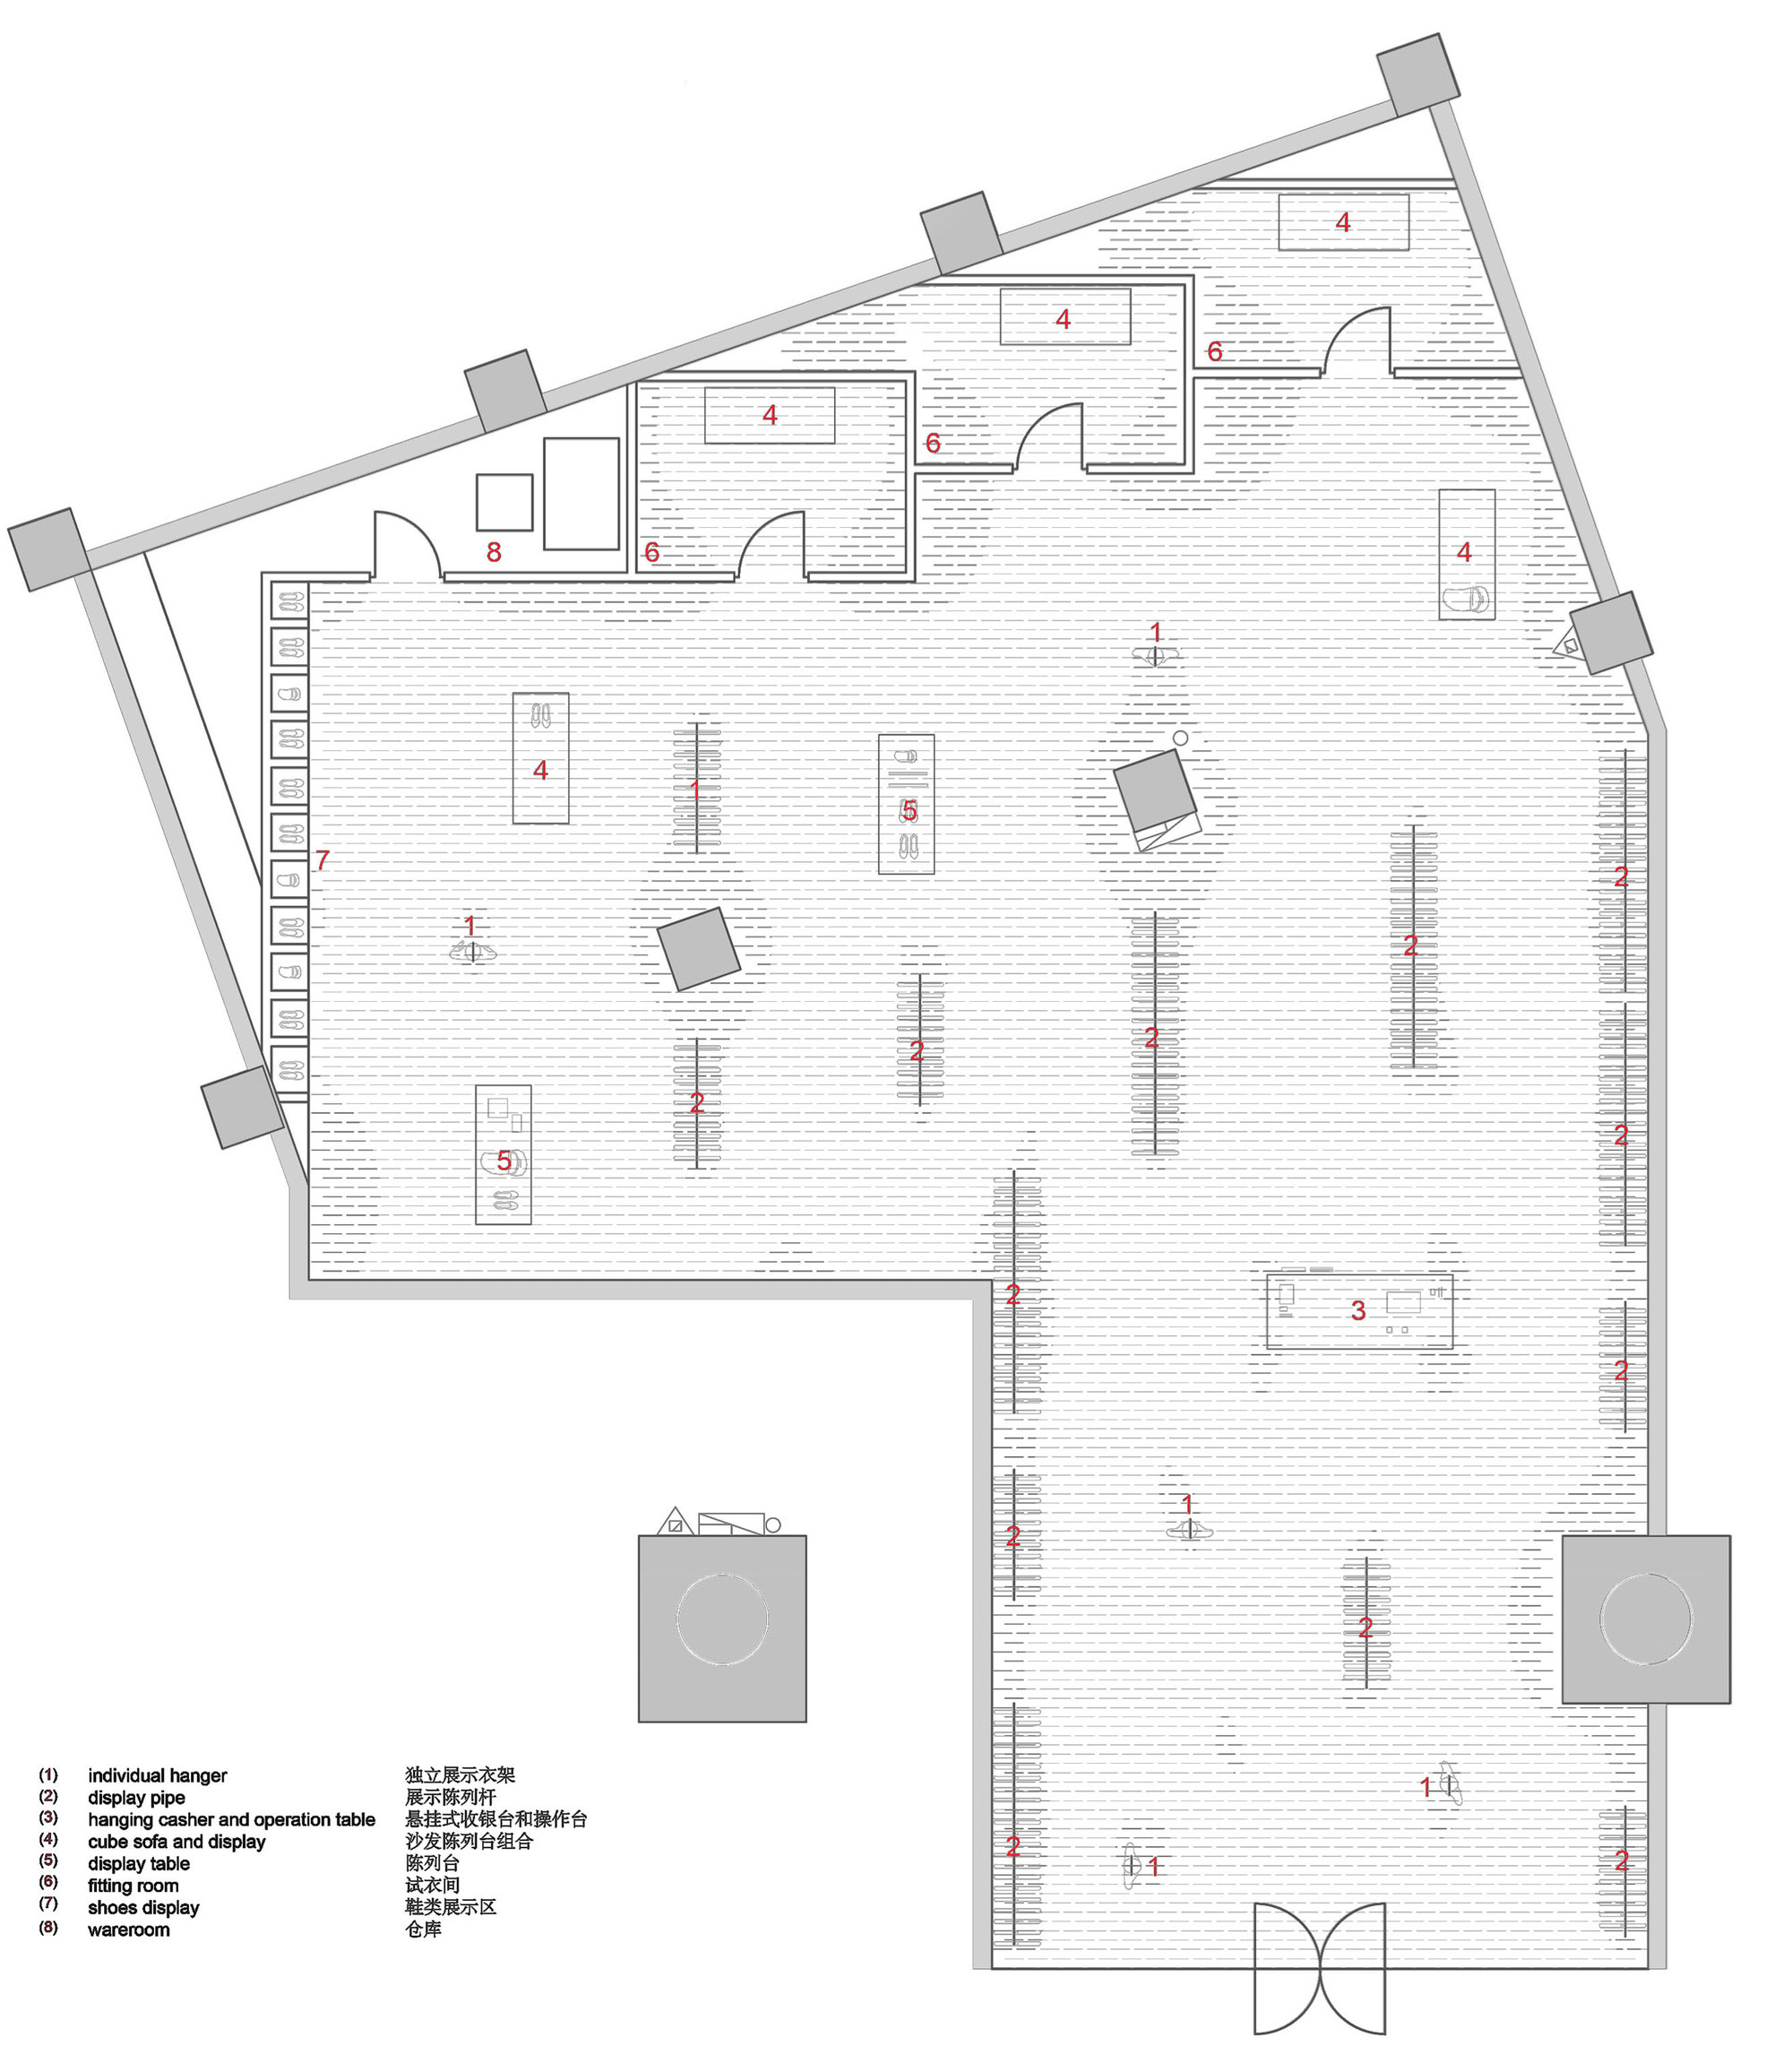 Gallery of snd fashion store 3gatti 15 for Clothing store floor plan layout